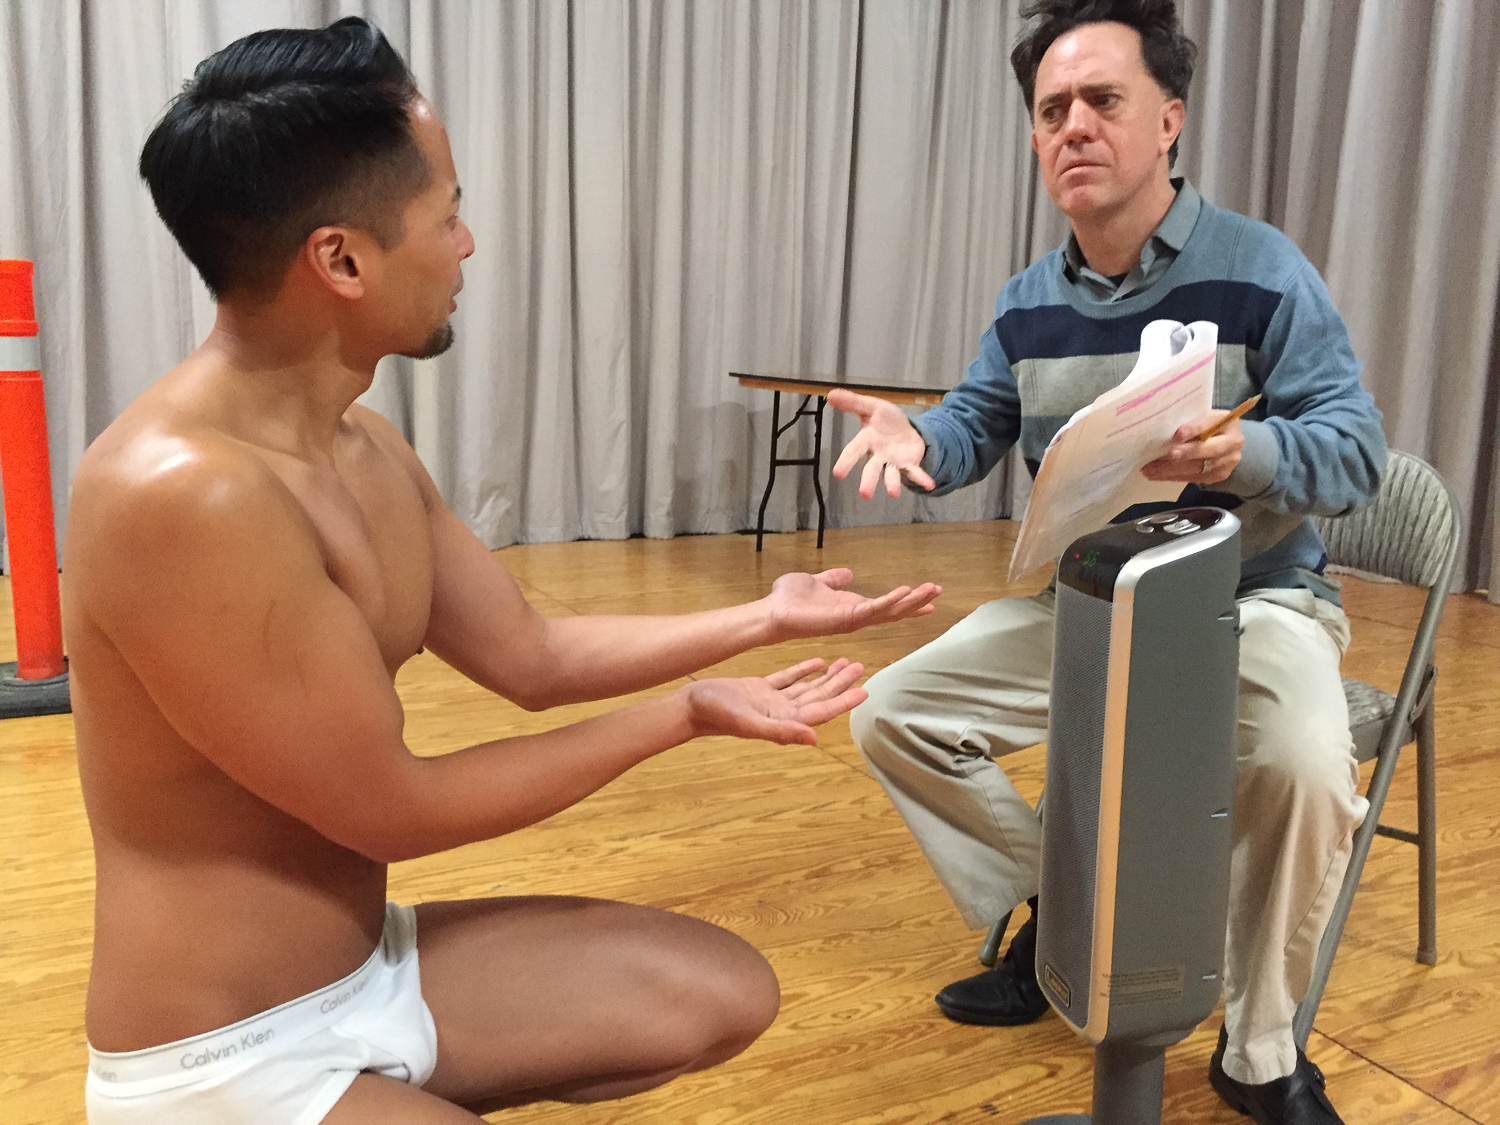 Jordan Ong (as Mark, an actor playing Estragon) and Eric Johnson (playing Doug, a director) in The Underpants Godotby Duncan Pflaster, a Theatre Rhinoceros Pop-Up Production at Spark Arts. Directed by Alan Quismorio.